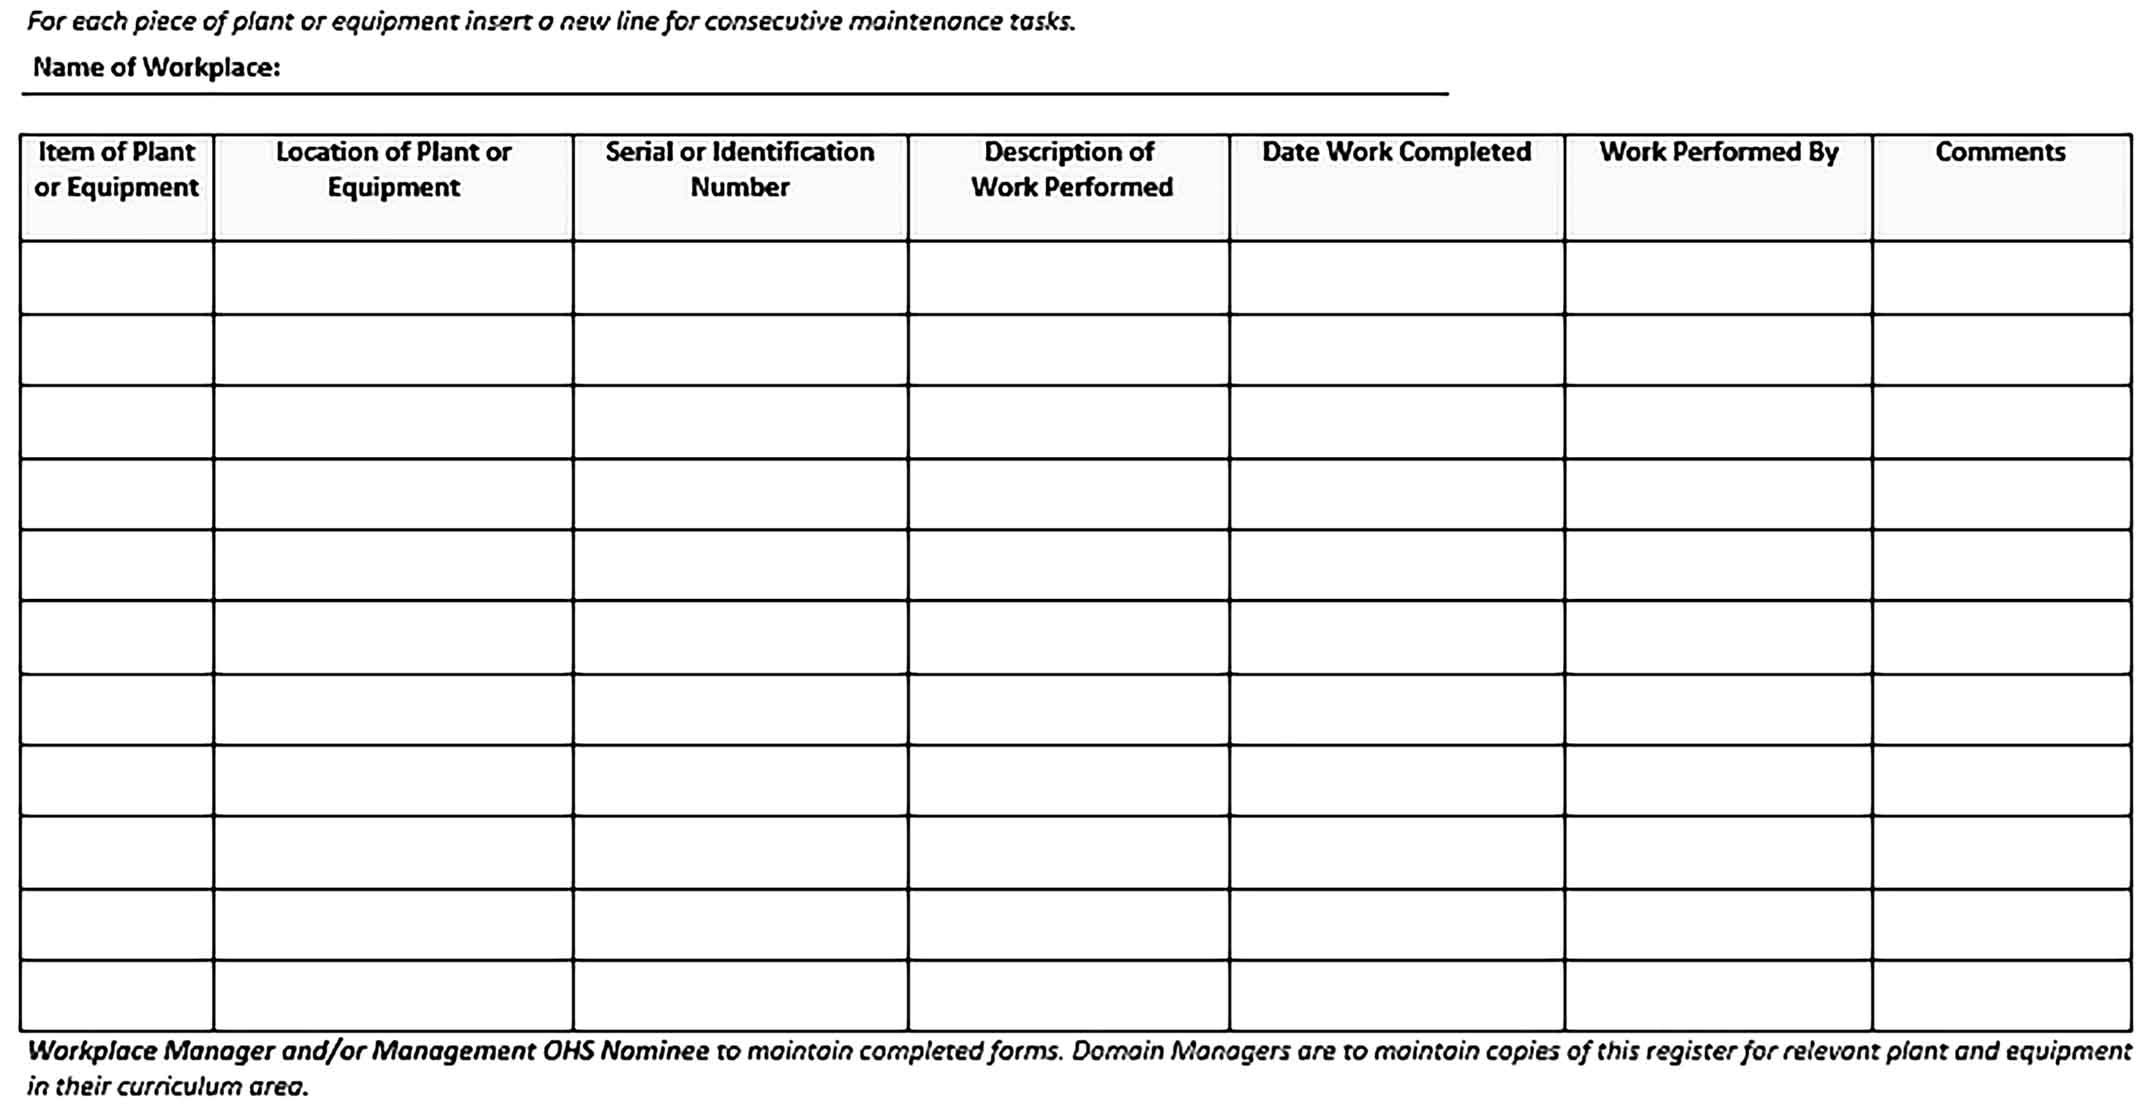 Template DEE EHU 10 4 1 Plant and Equipment Maintenance Form 2 Sample